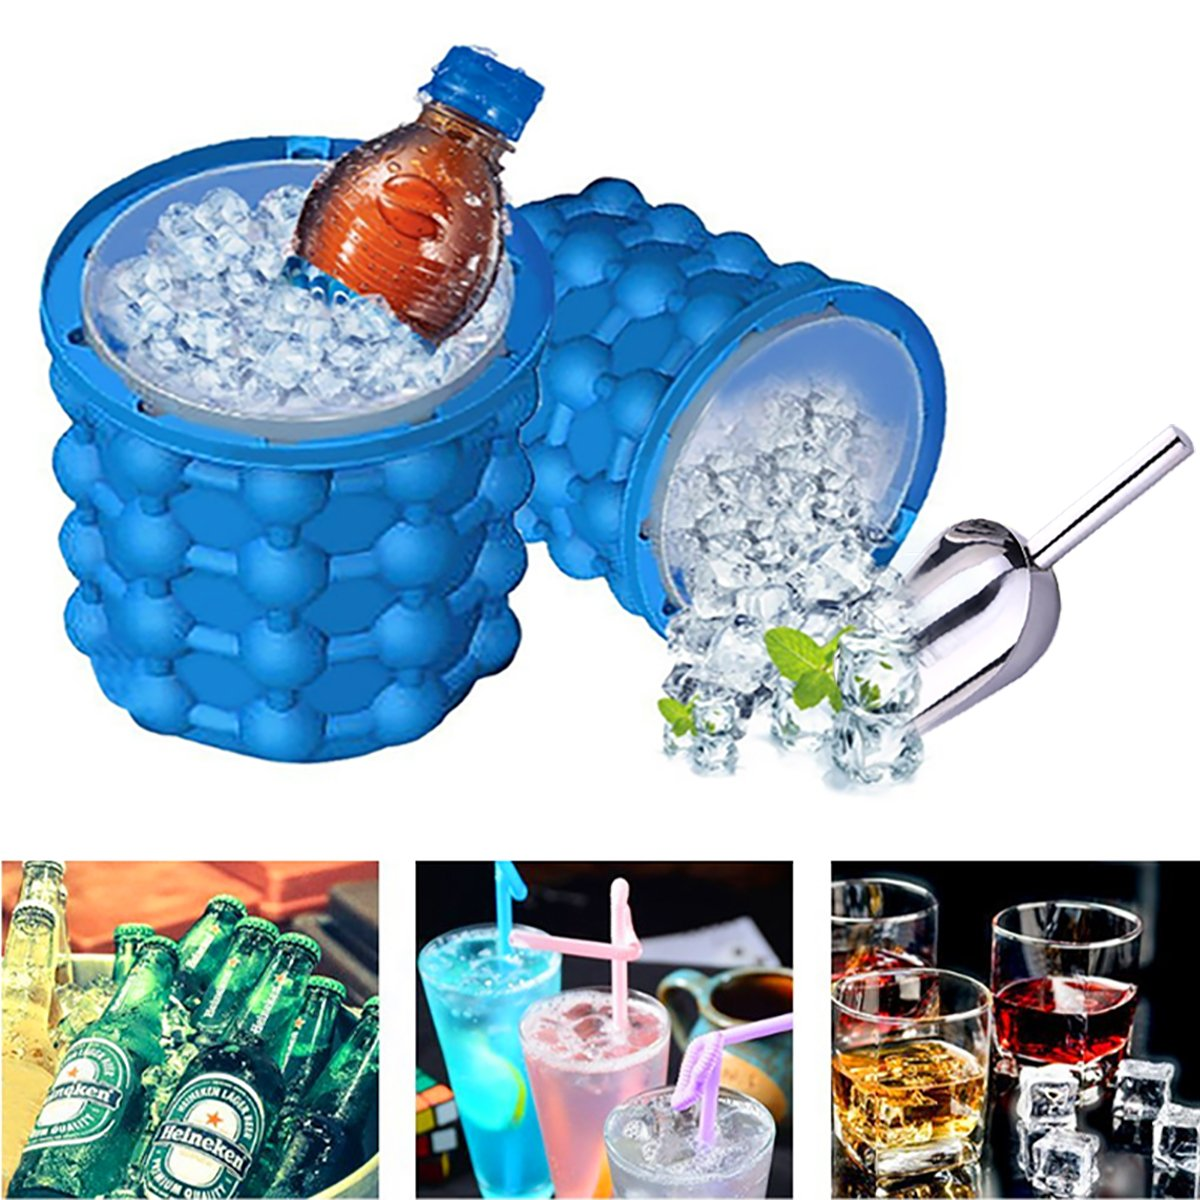 DierCosy Ice Cube Maker Ice Cube Tray 2 in 1 Silicone Ice Bucket Dual-use Revolutionary Space Saving for Beer, Whiskey Summer Home Party Kitchen Tools with Tong blue